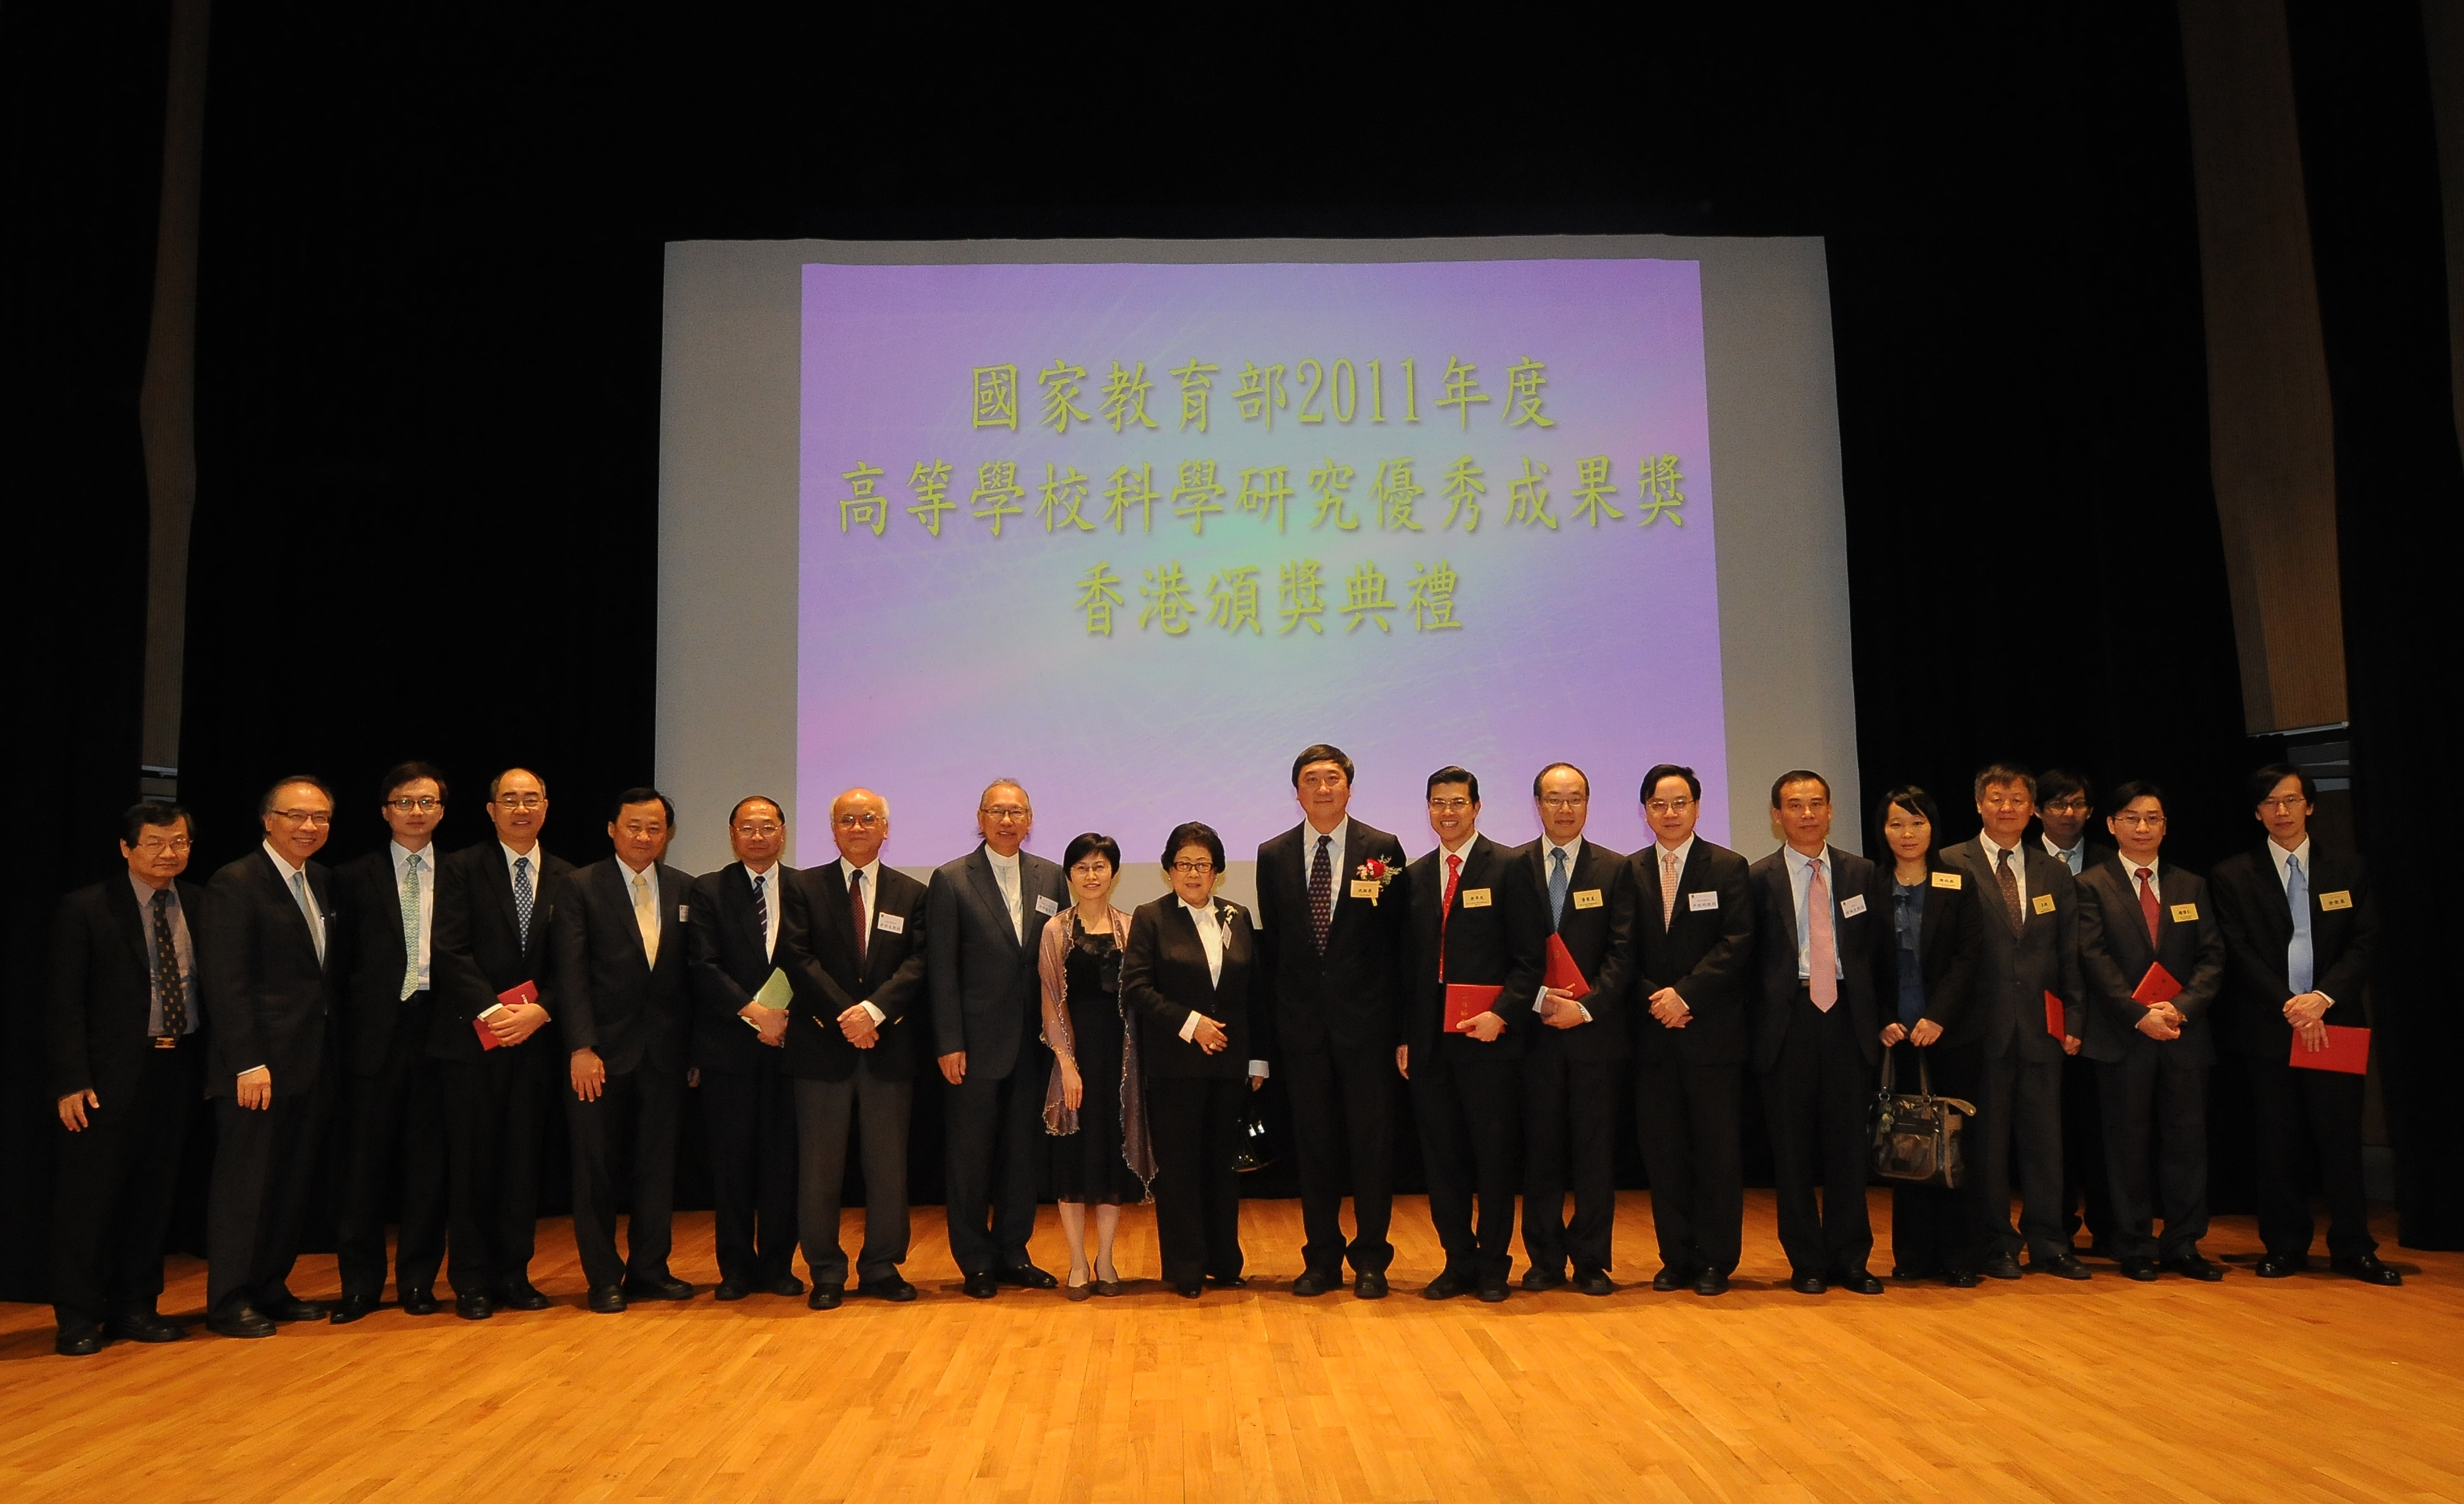 A group photo of CUHK award recipients with their guests and colleagues.